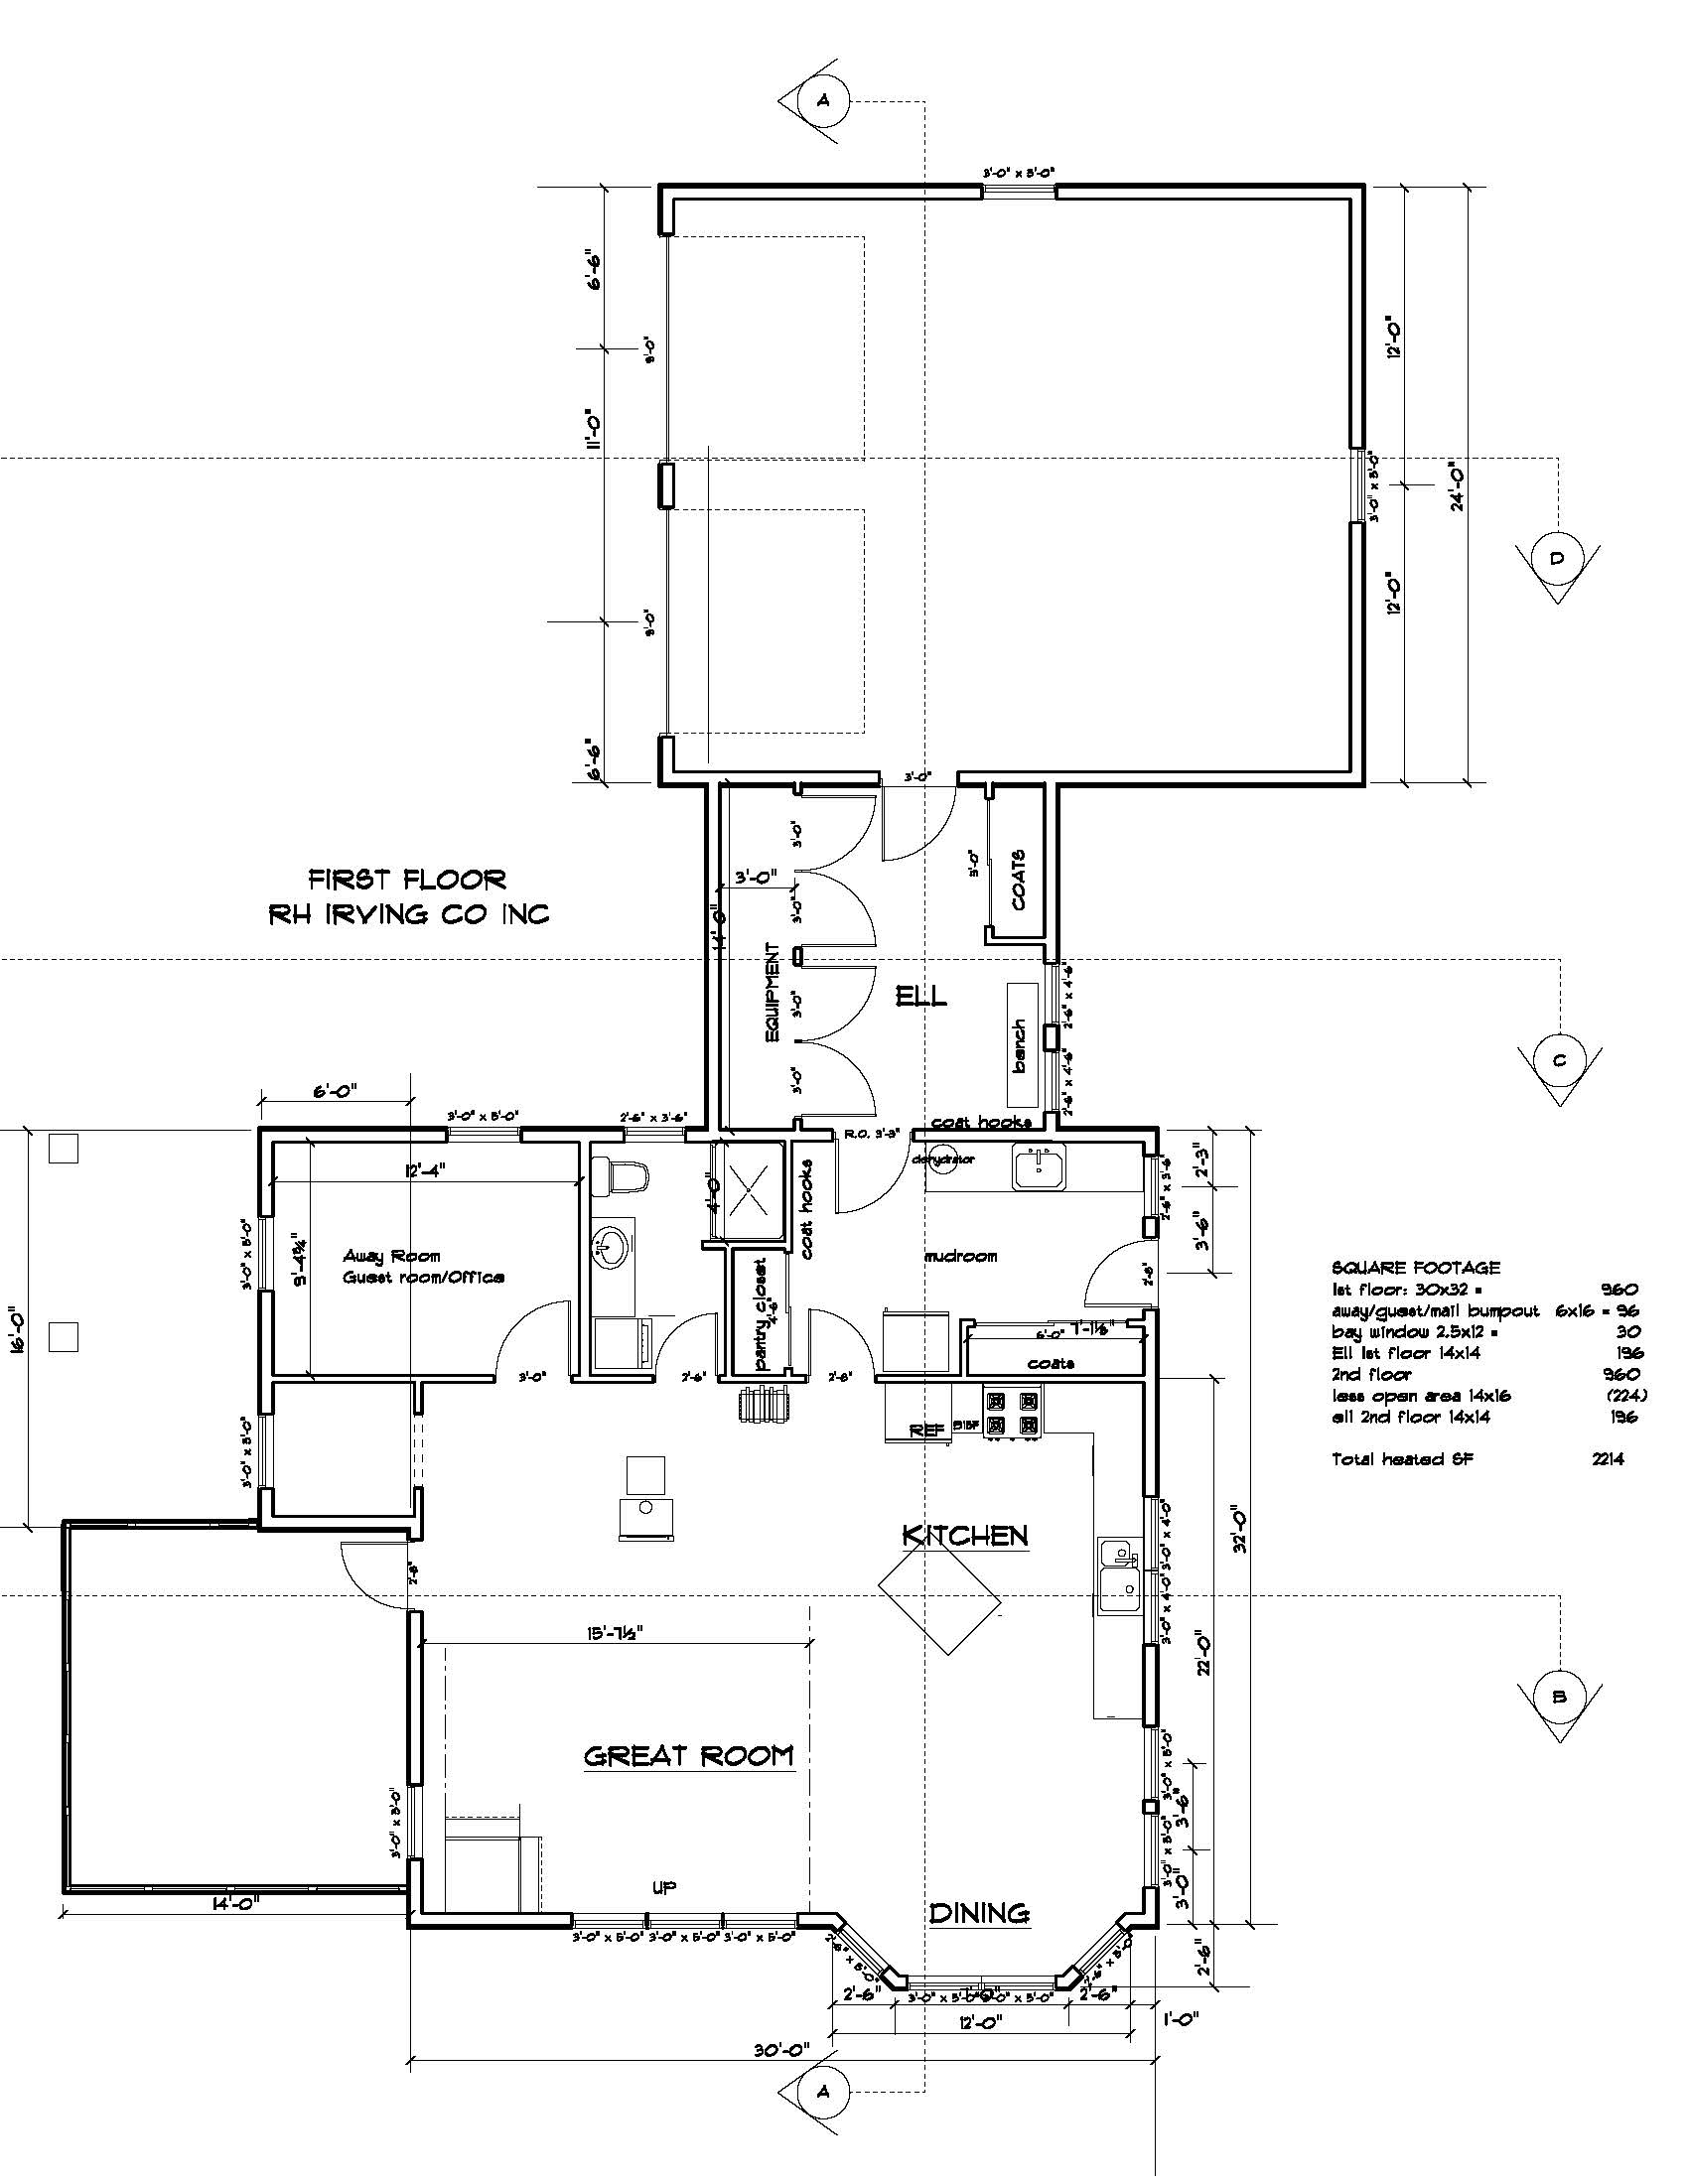 Sample Floor Plan 2